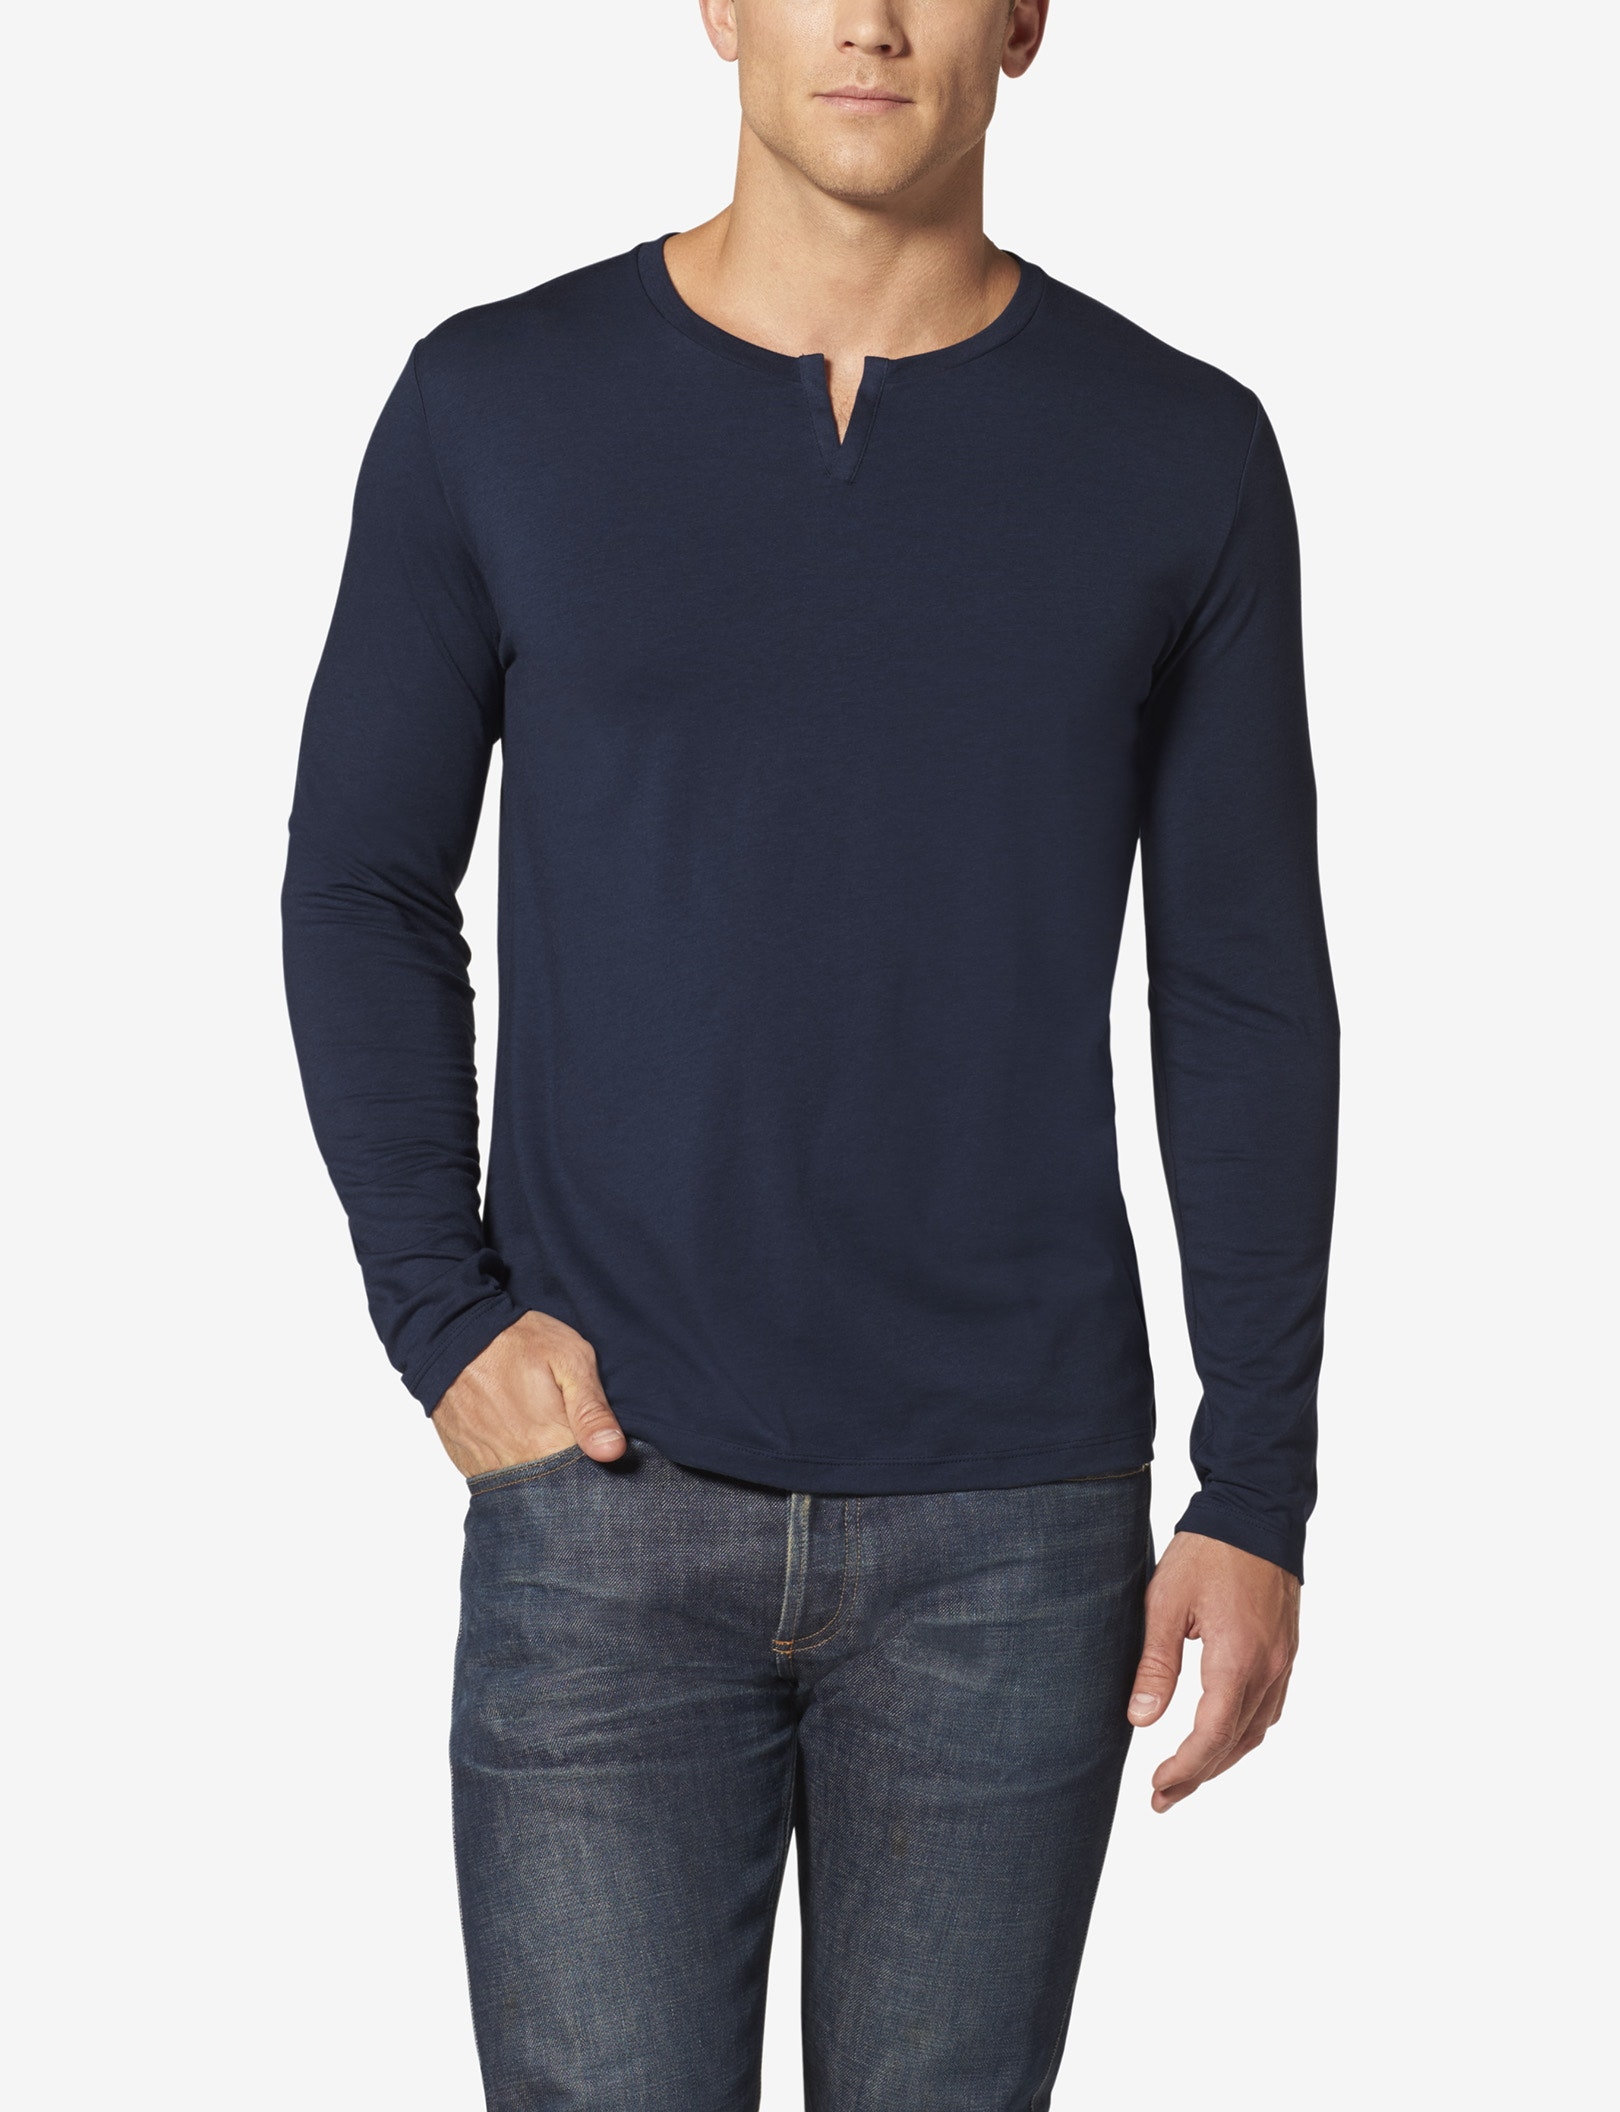 The 14 Best Undershirts For Men Reviewed; The Tommy John undershirt is made of an exceptionally stretchy material to hug your body and remain in place no matter how you move. a T-shirt is perfectly acceptable. T-shirts in general typically will carry a bit more weight (i.e. thicker) than an undershirt to account for the external.